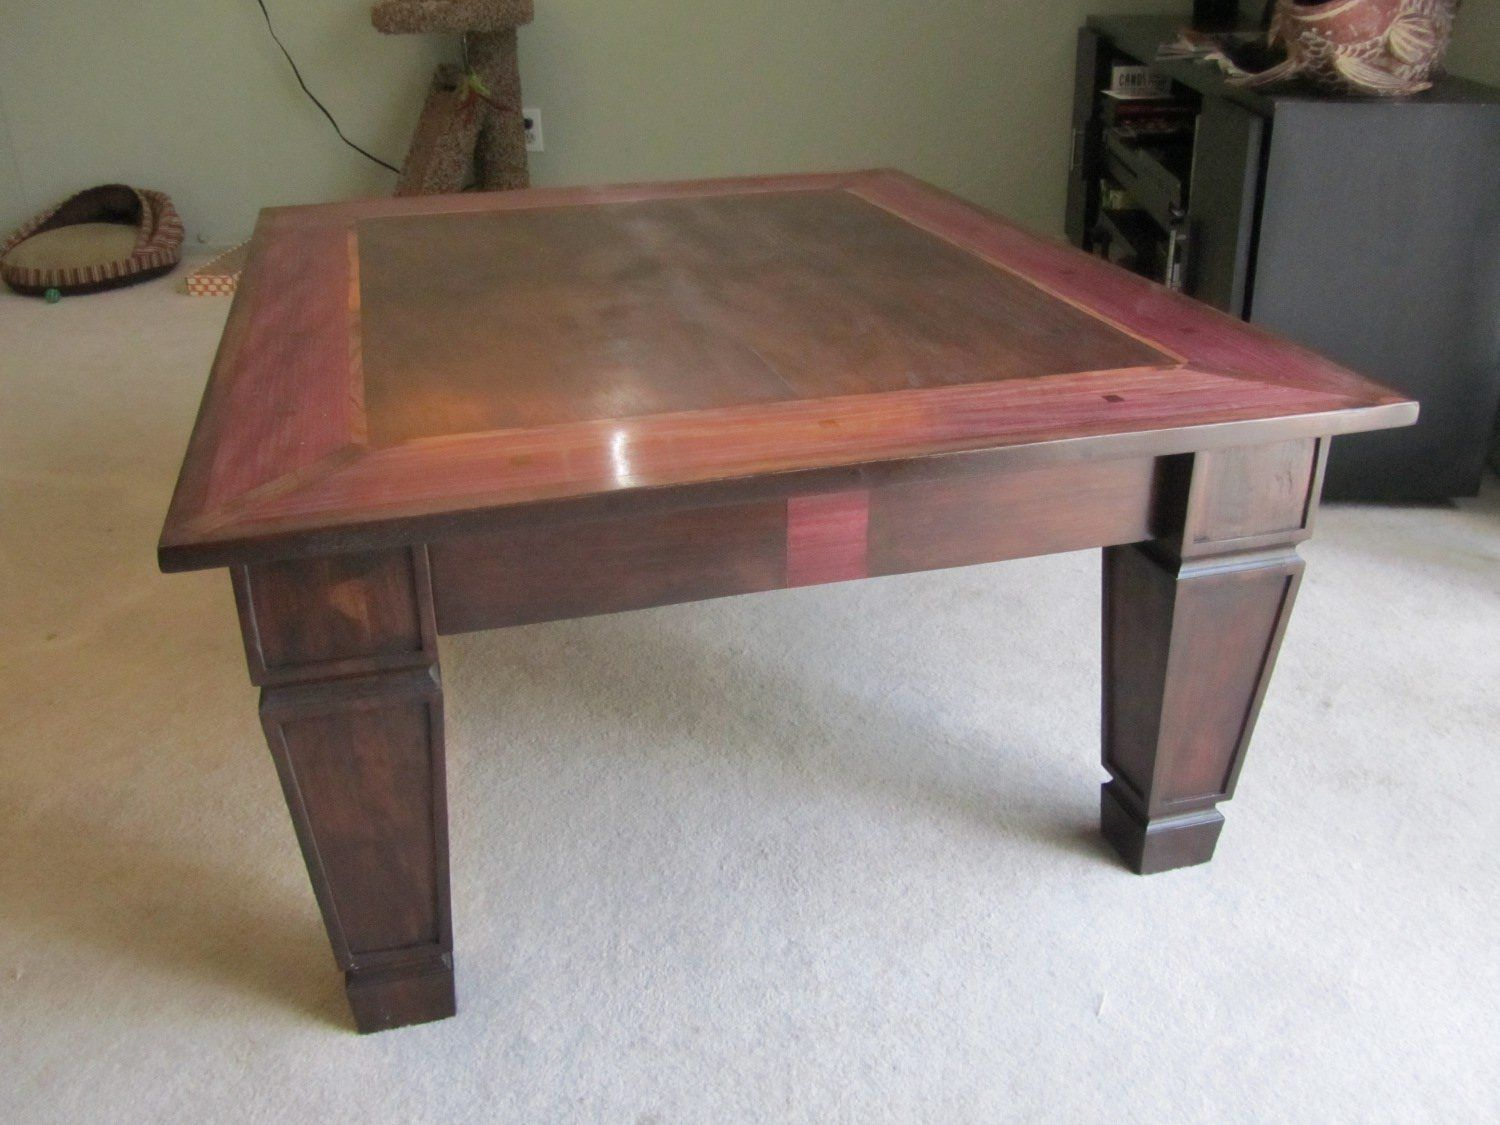 Table Leg Design Ideas Coffee Table Design Ideas Pinterest Rh Pinterest Com  Hairpin Coffee Table Legs Home Depot